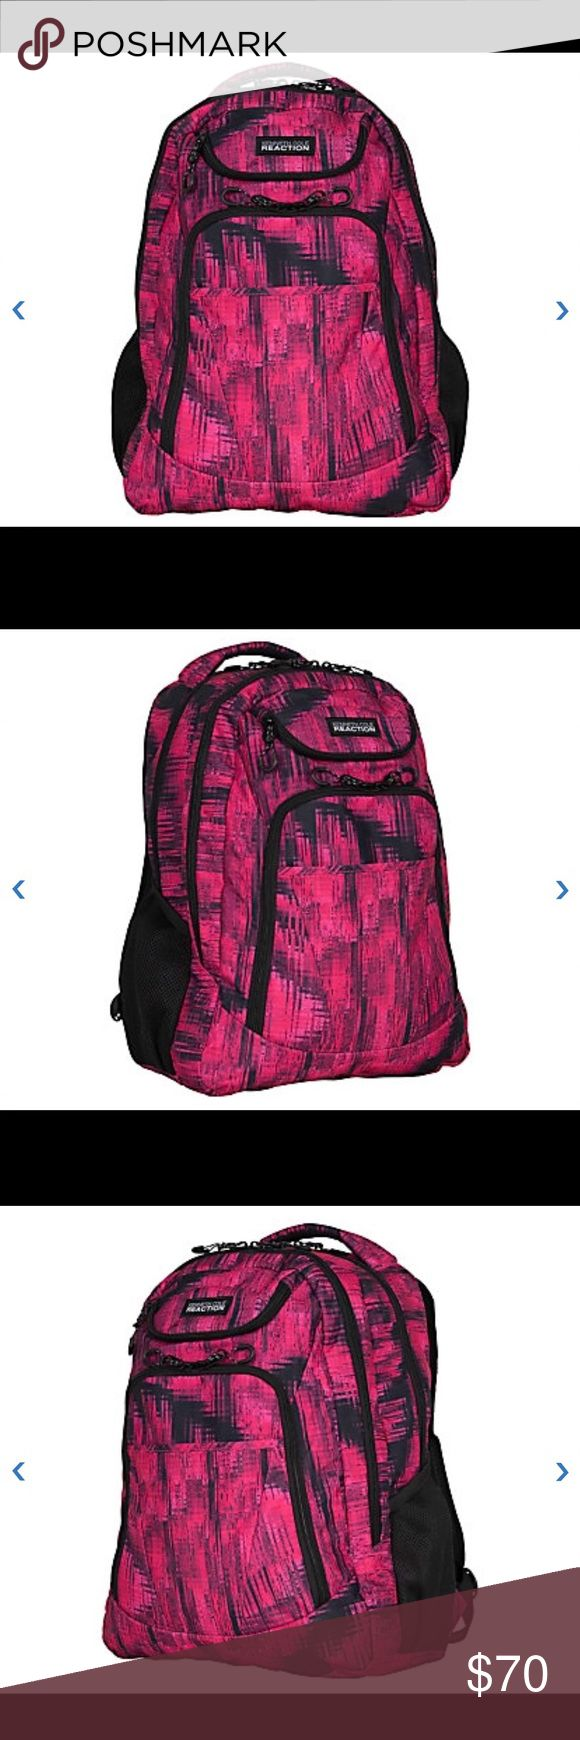 """Kenneth Cole R-Tech Double-Compartment Backpack Kenneth Cole R-Tech Tribute Double-Compartment Backpack With 17"""" Laptop Pocket, Fuchsia Acid Kenneth Cole Bags Backpacks"""